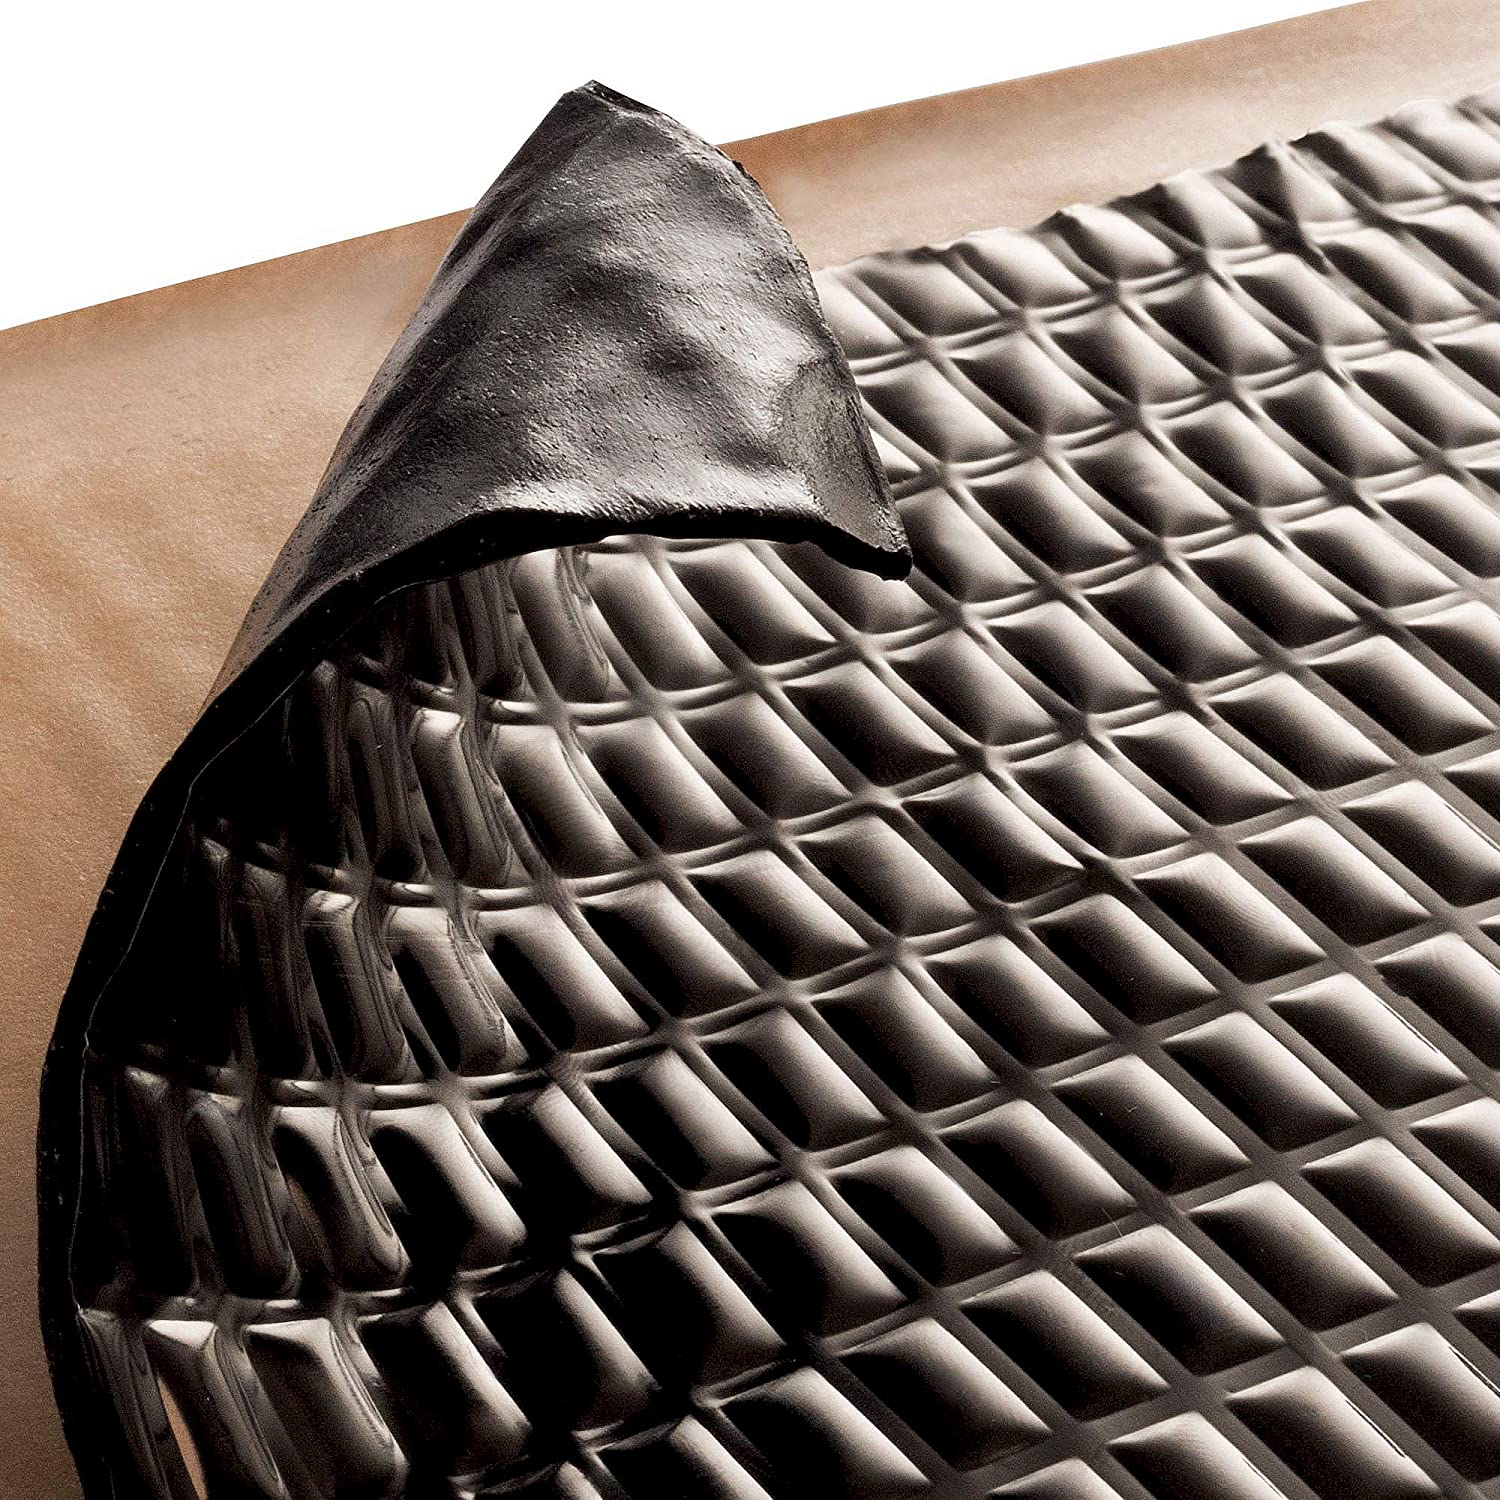 Sound deadening material sound Insulation Sound deadening Bulk Kit Sound Deadening mat 80 mil 12 sqft Sound dampener Sound Deadener Mat Sound Dampening material